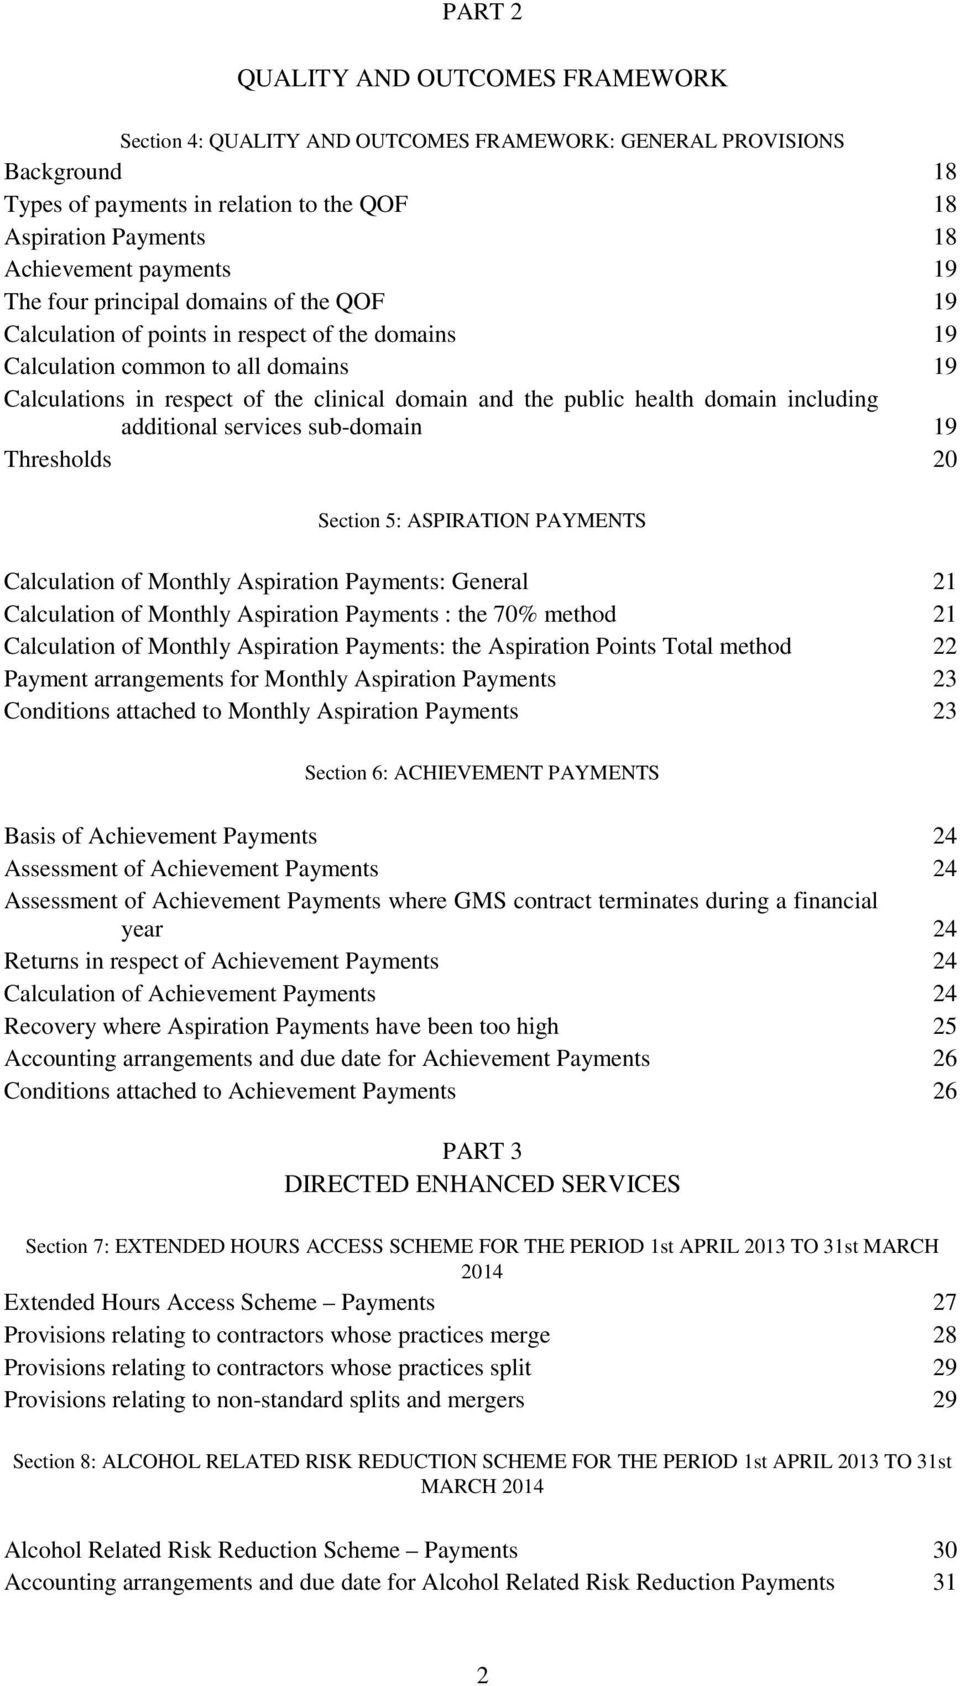 public health domain including additional services sub-domain 19 Thresholds 20 Section 5: ASPIRATION PAYMENTS Calculation of Monthly Aspiration Payments: General 21 Calculation of Monthly Aspiration